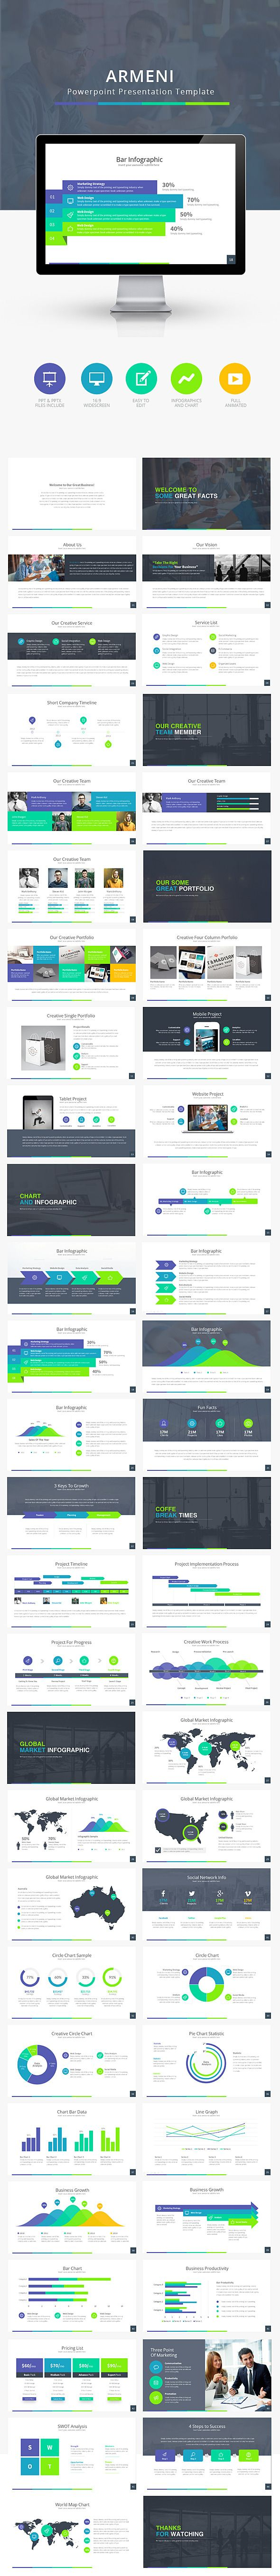 Armeni Powerpoint Presentation Template